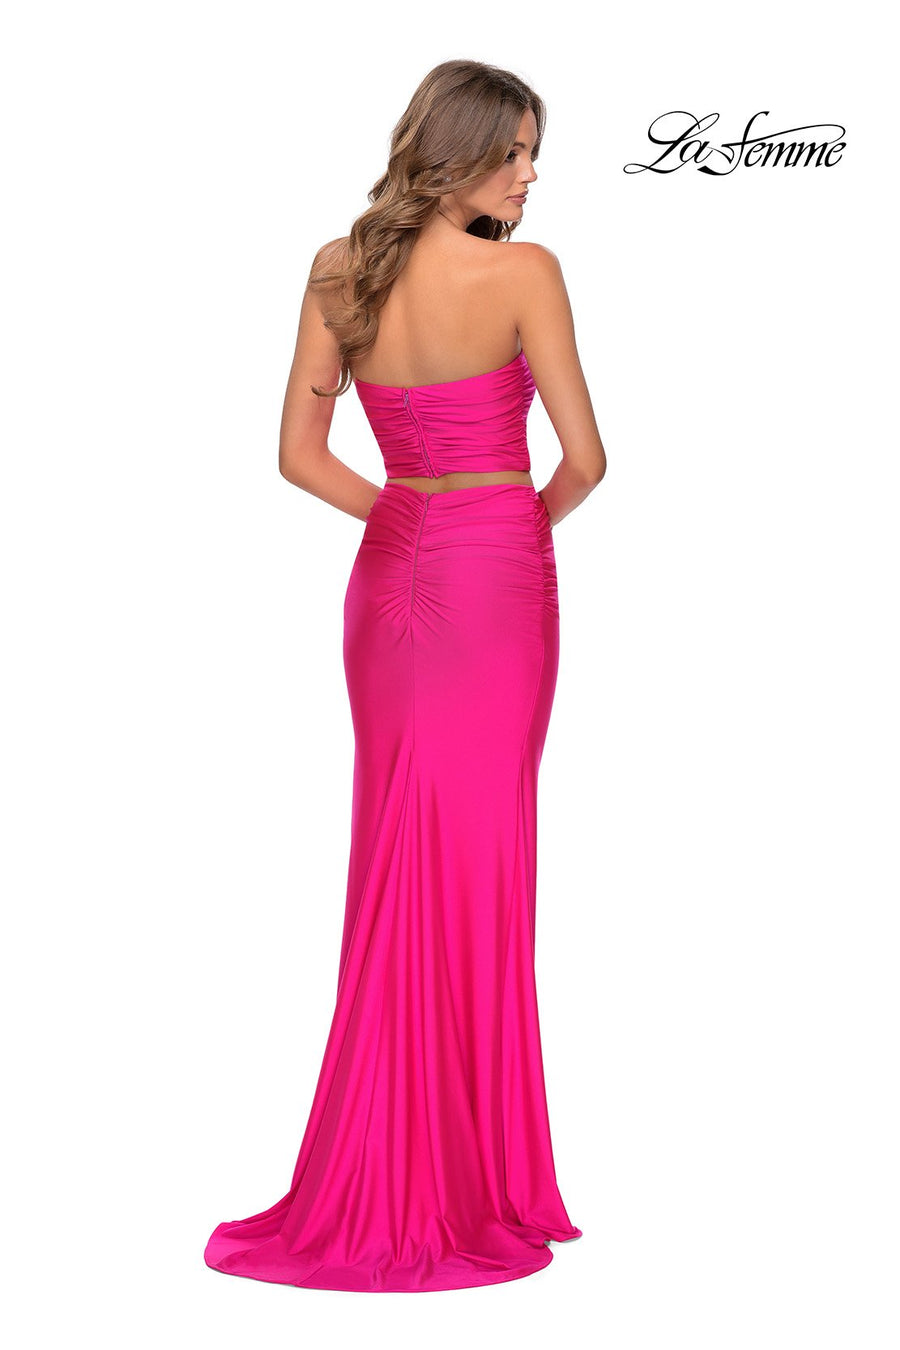 La Femme 28972 prom dress images.  La Femme 28972 is available in these colors: Neon Green, Neon Pink, Neon Yellow.